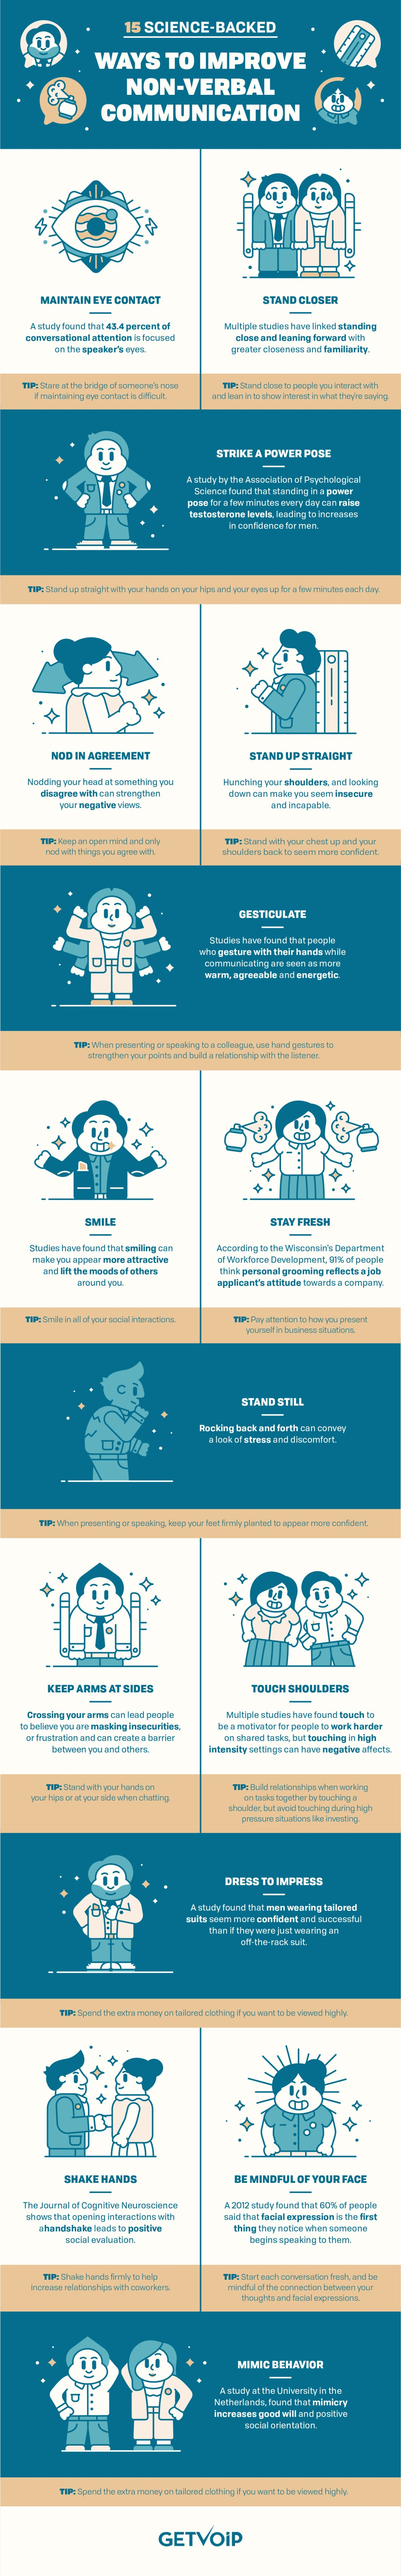 How to Advance Non-Verbal Communication Skills: 15 Science-Backed Methods - Infographic